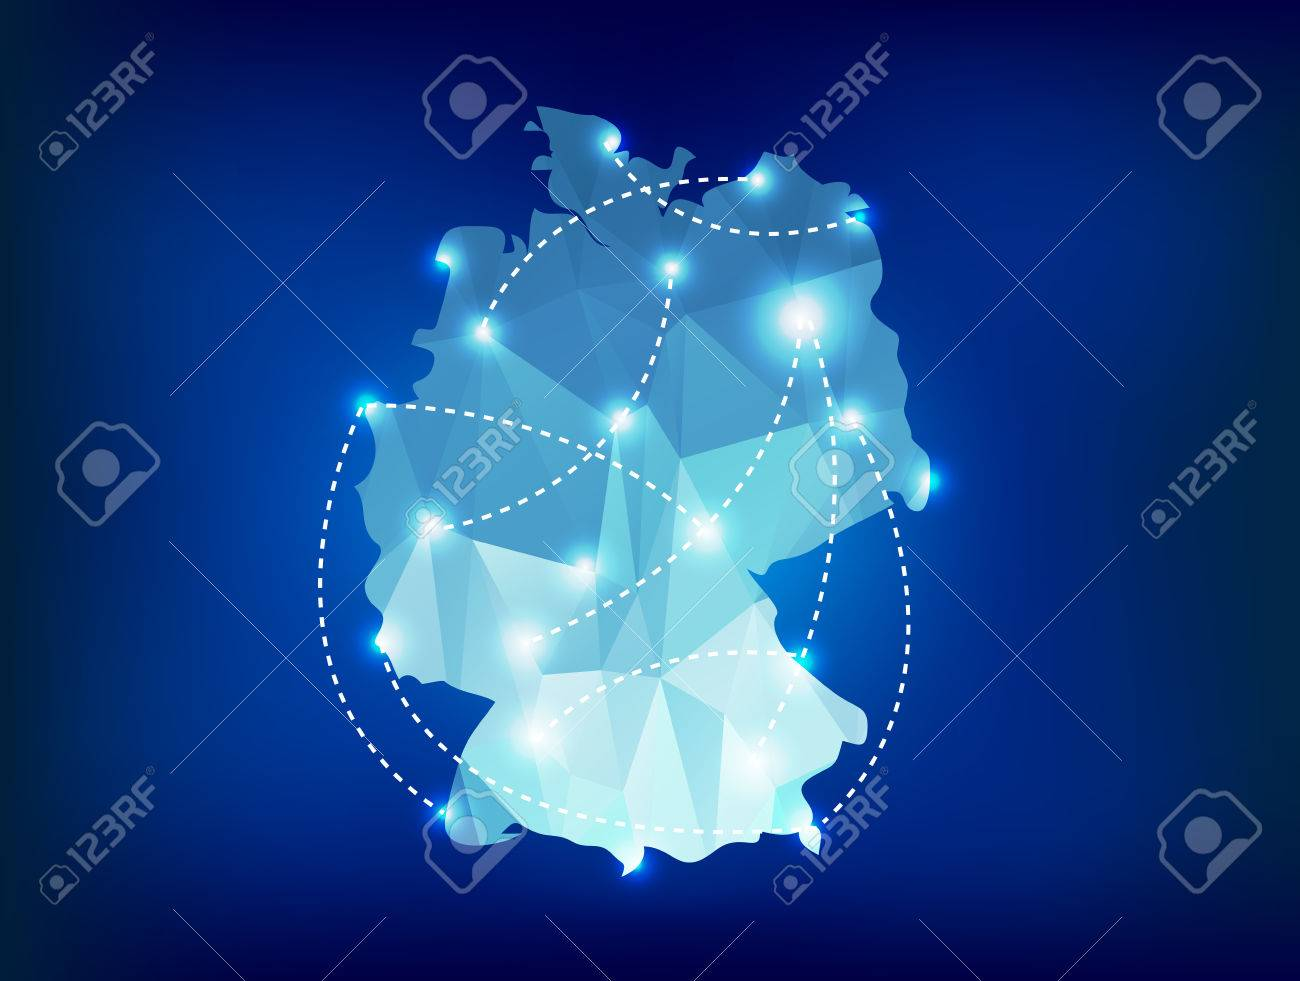 Germany country map polygonal with spot lights places - 26532488